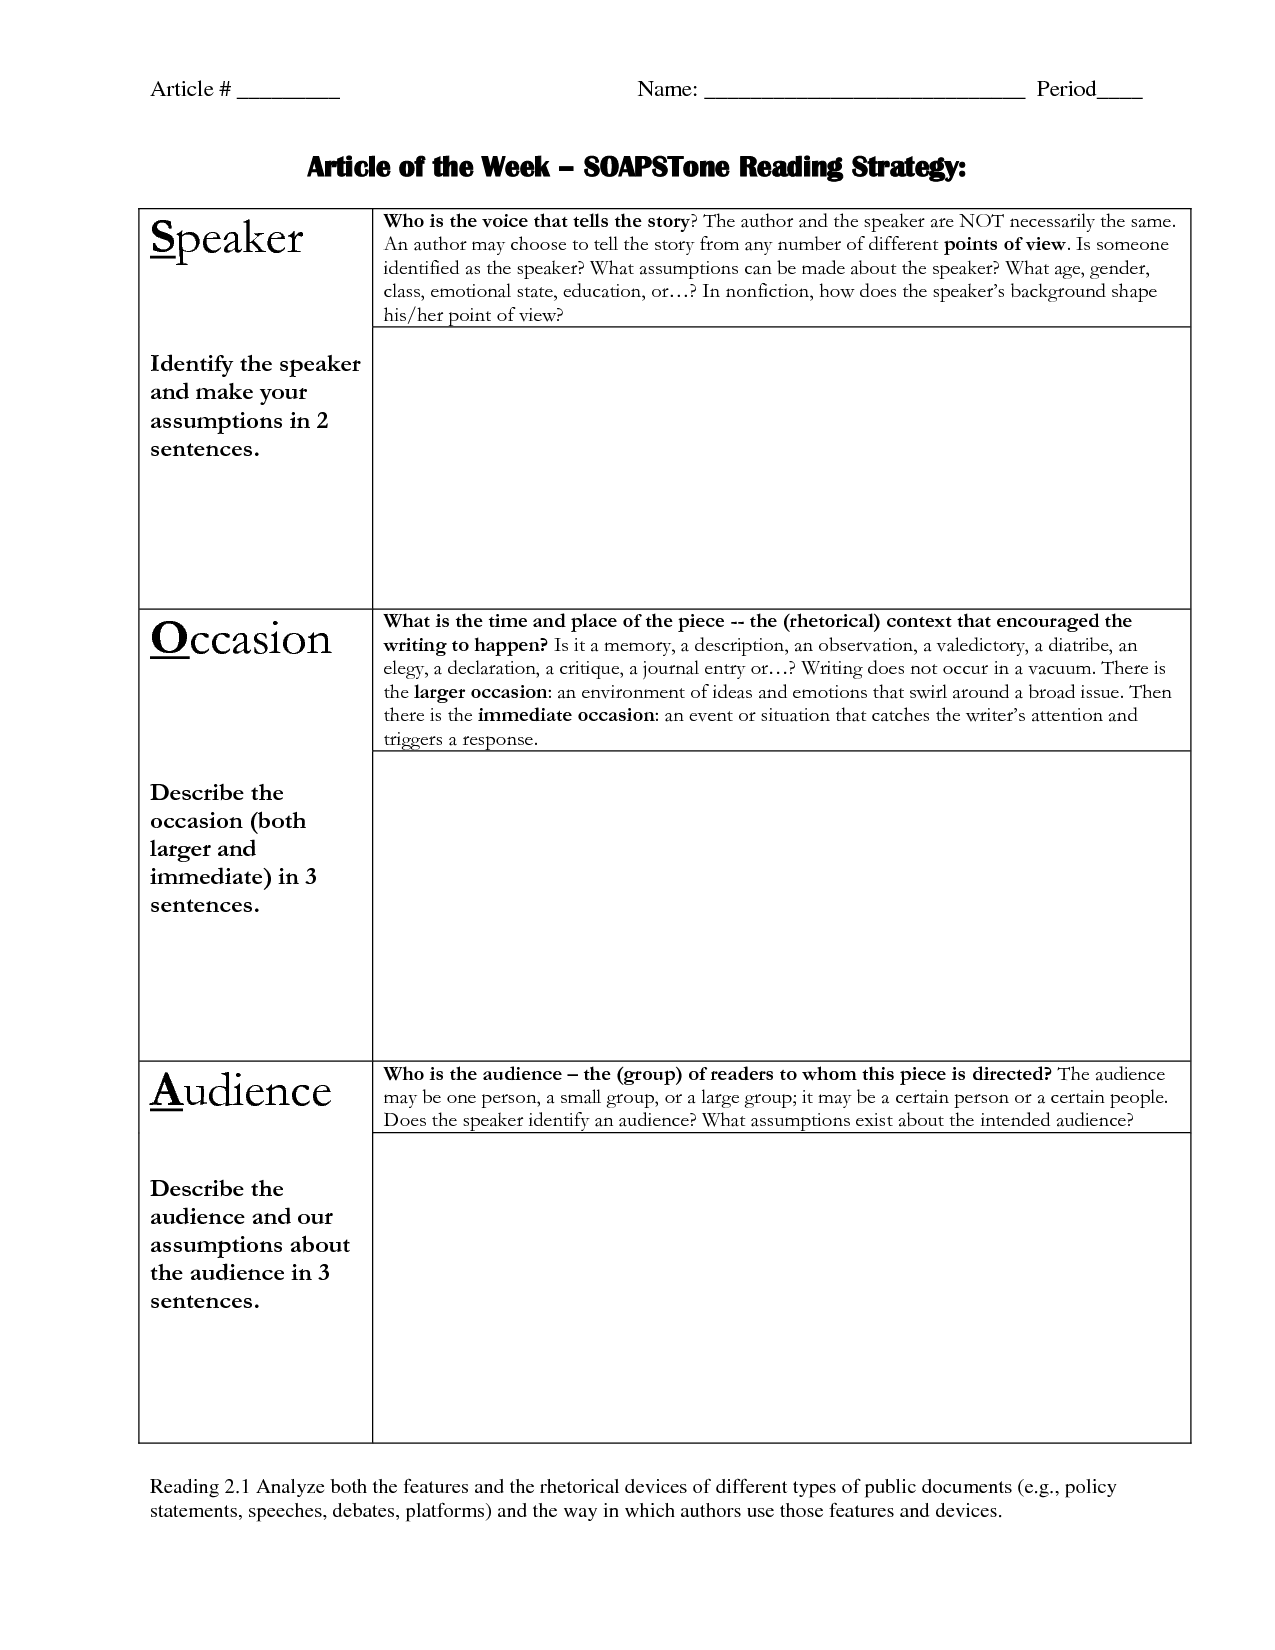 Soapstone Worksheet Ap